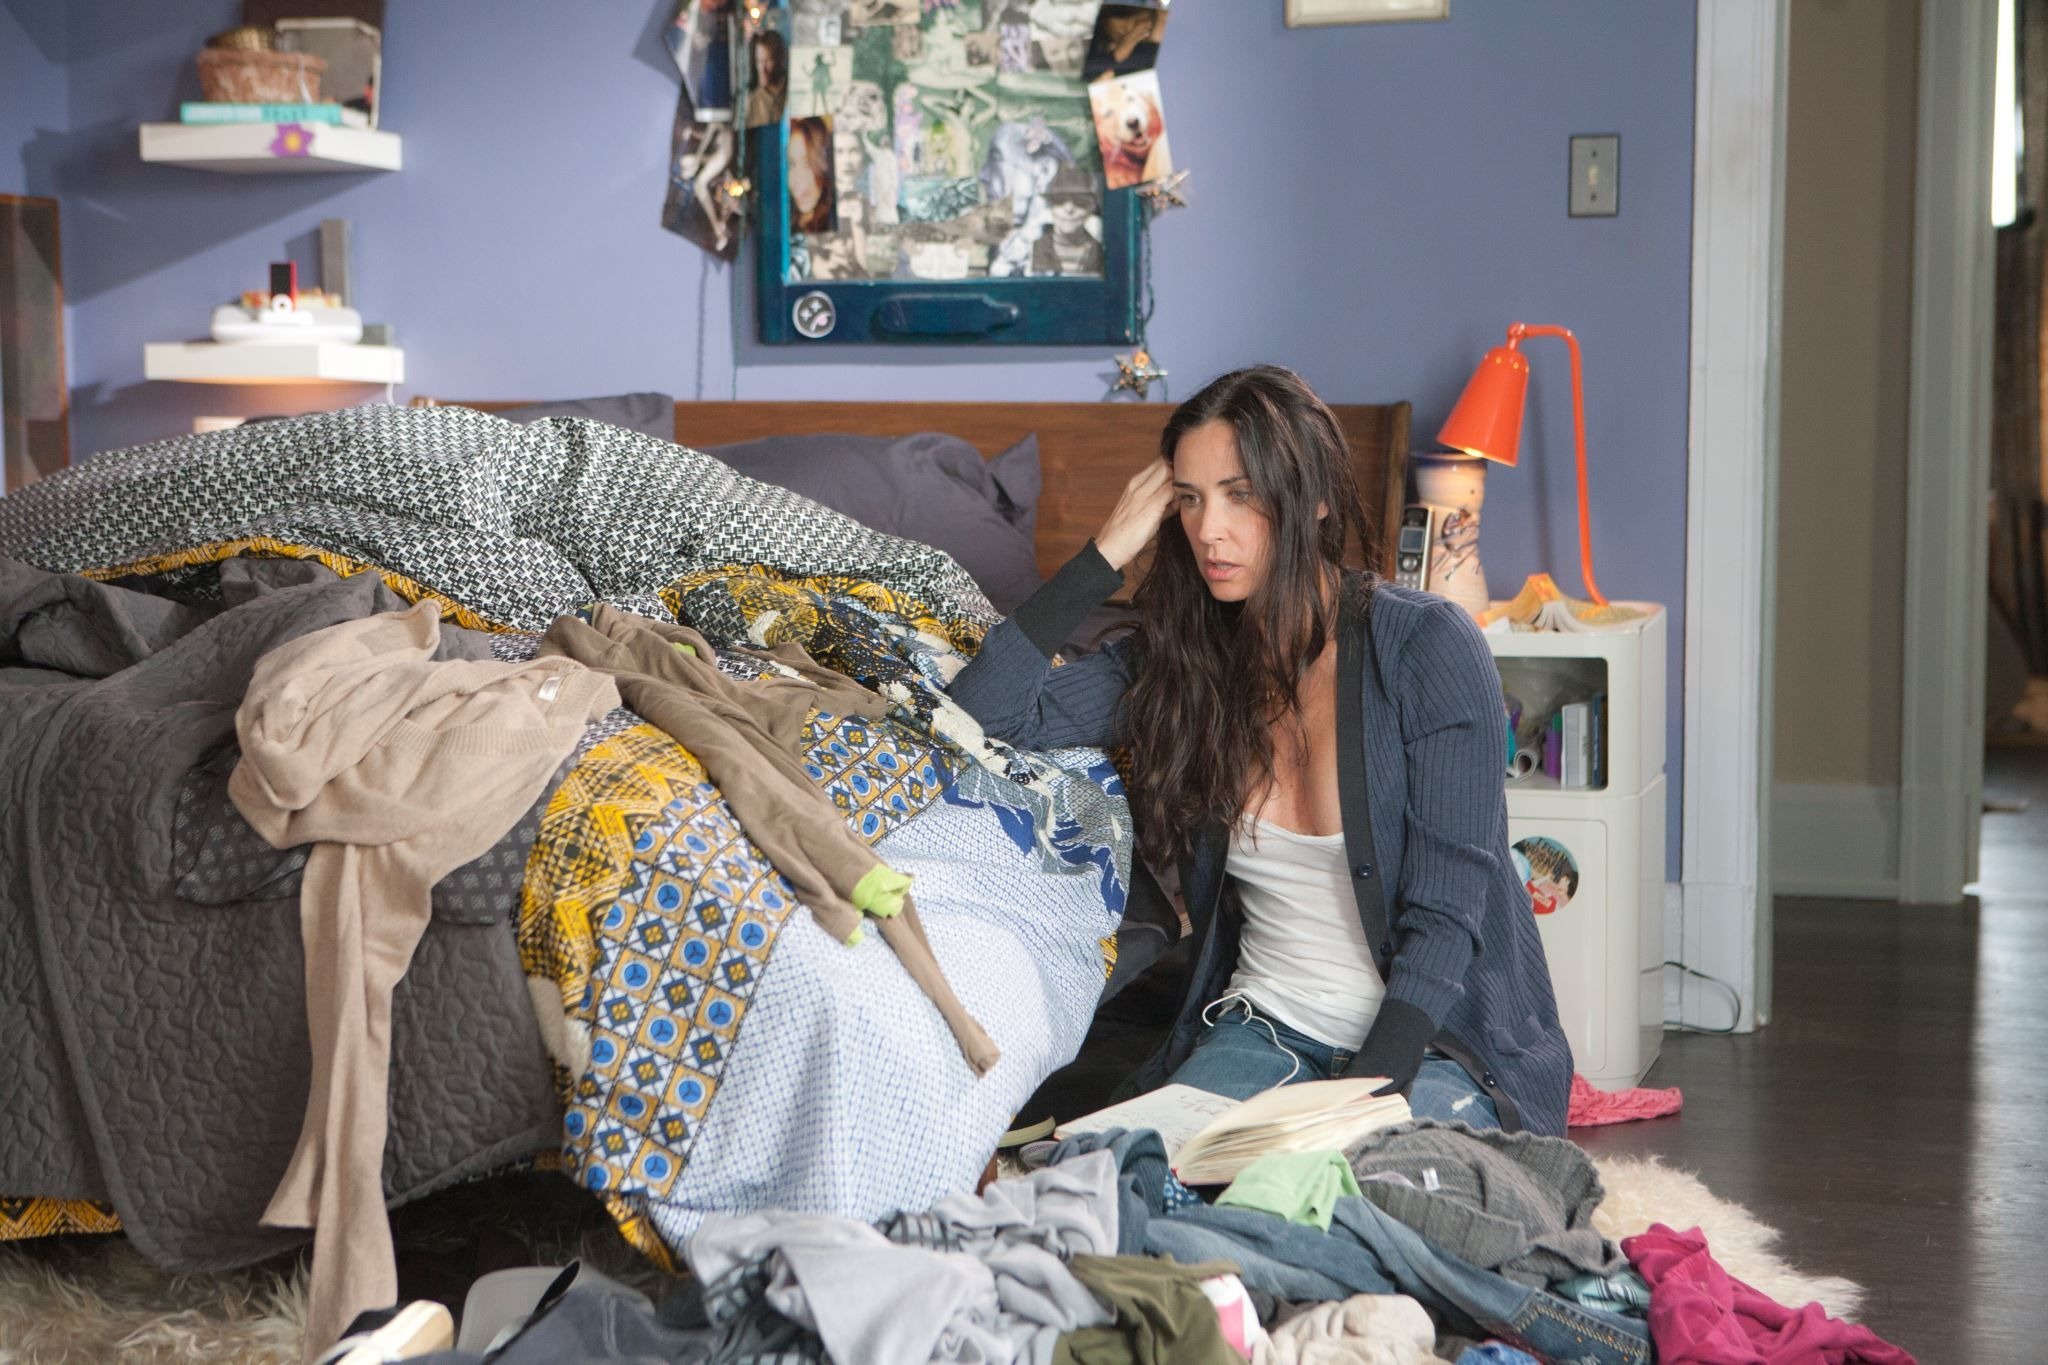 the clevis pictures of miley cyrus bedroom our site